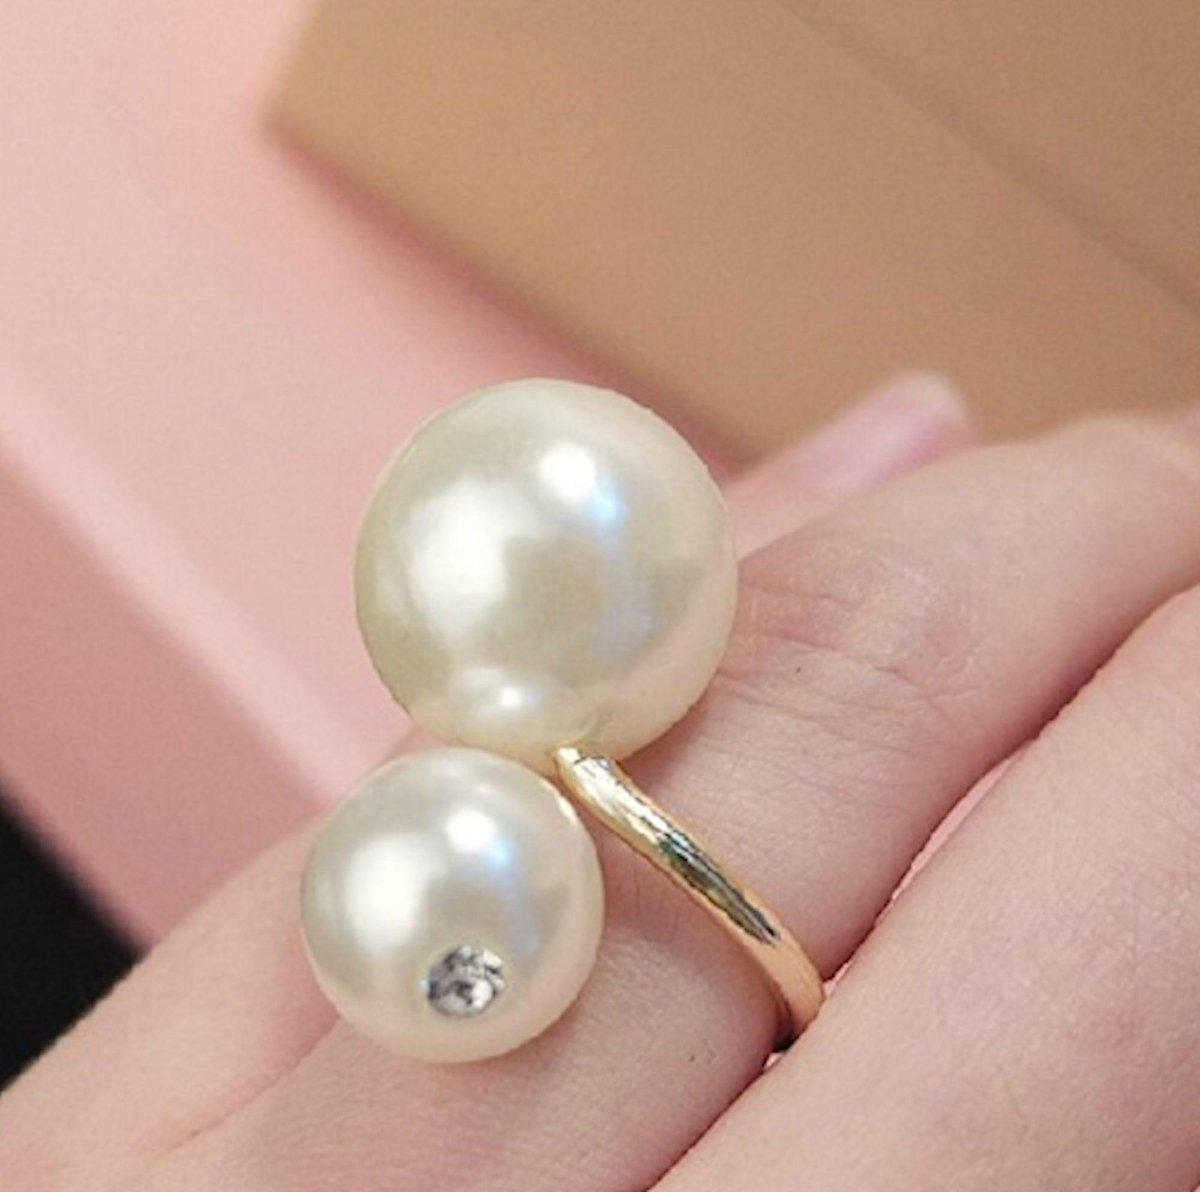 Large double Pearl ring https://t.co/C6XgMiQlMo  https://t.co/EHFAENVvW5